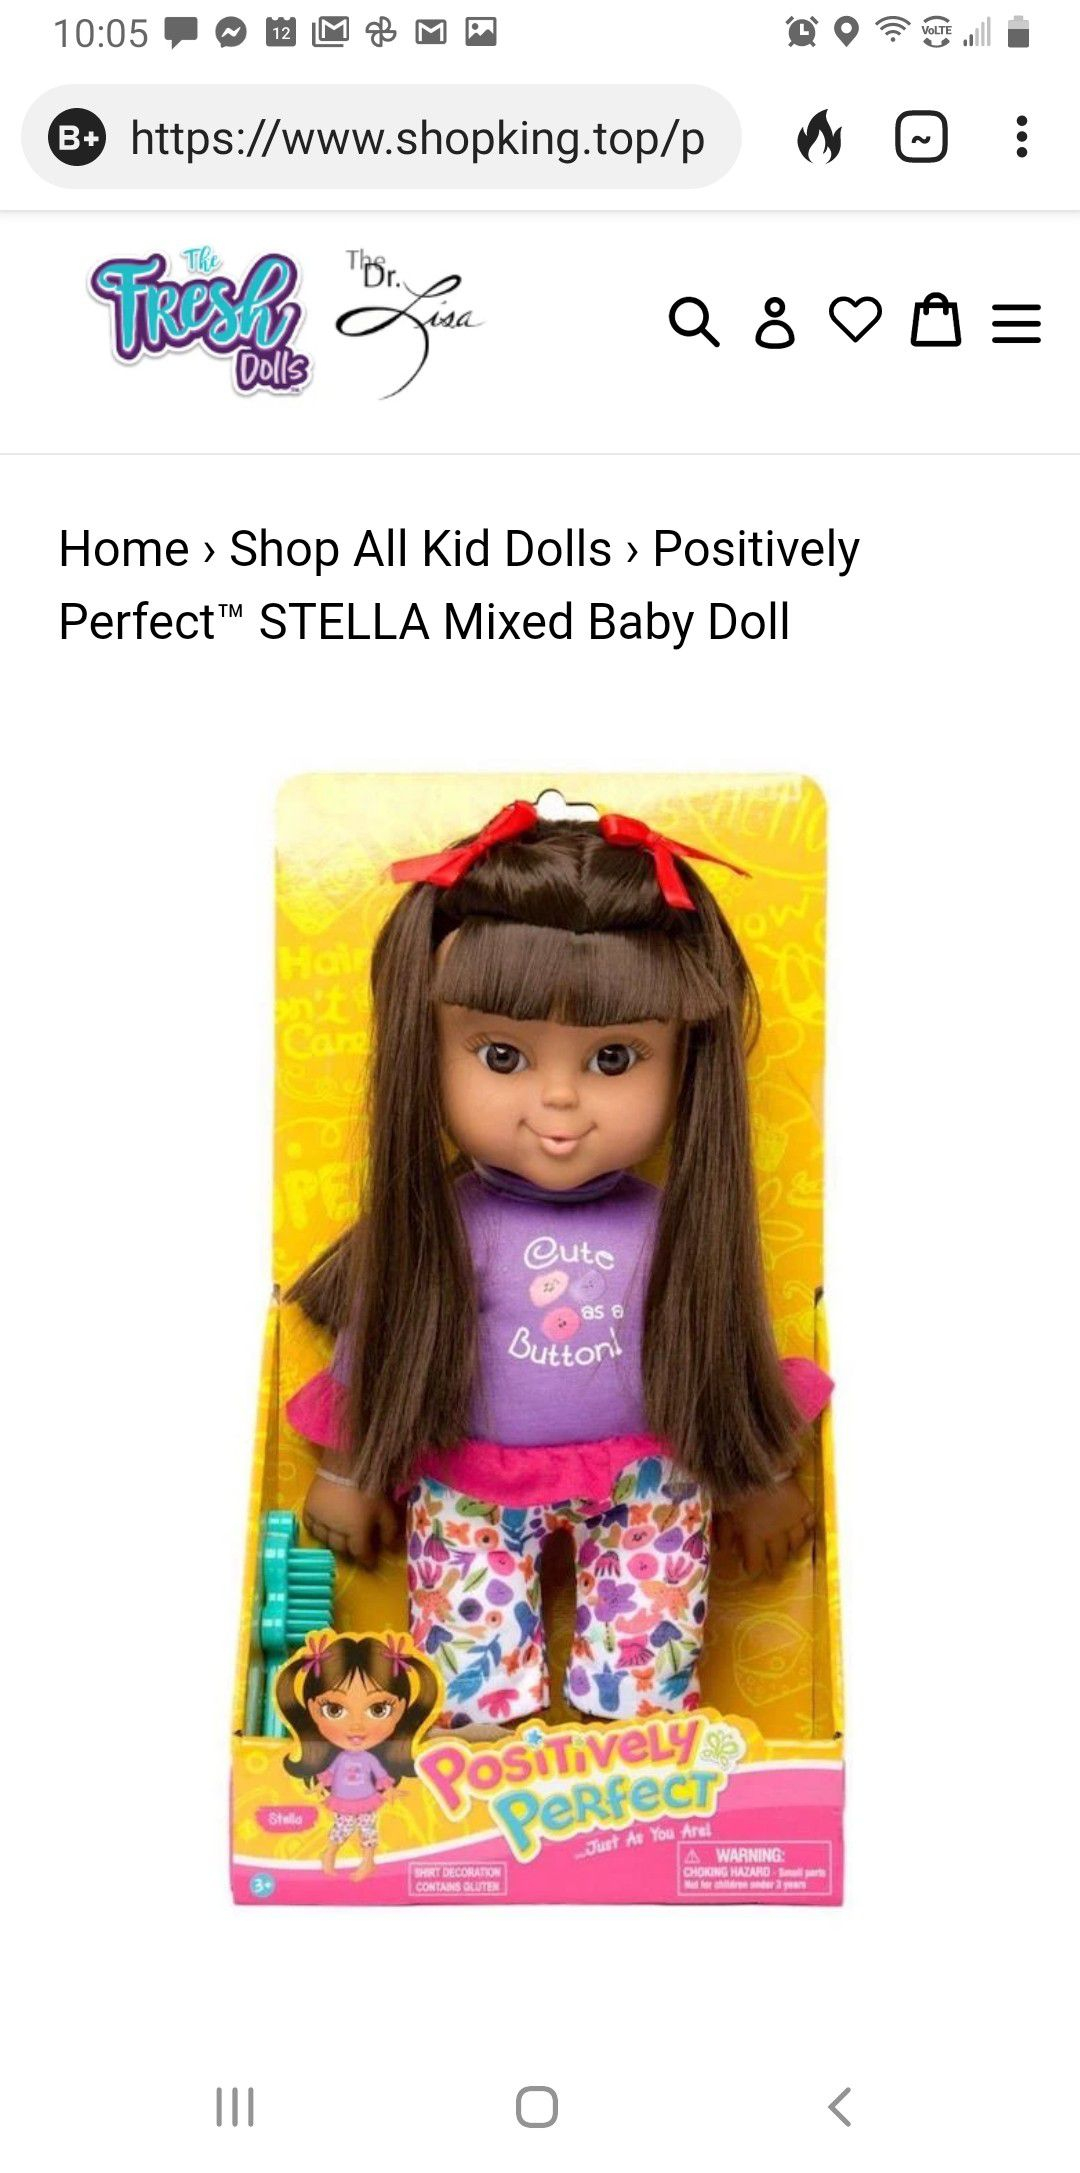 Positively perfect ethnic doll